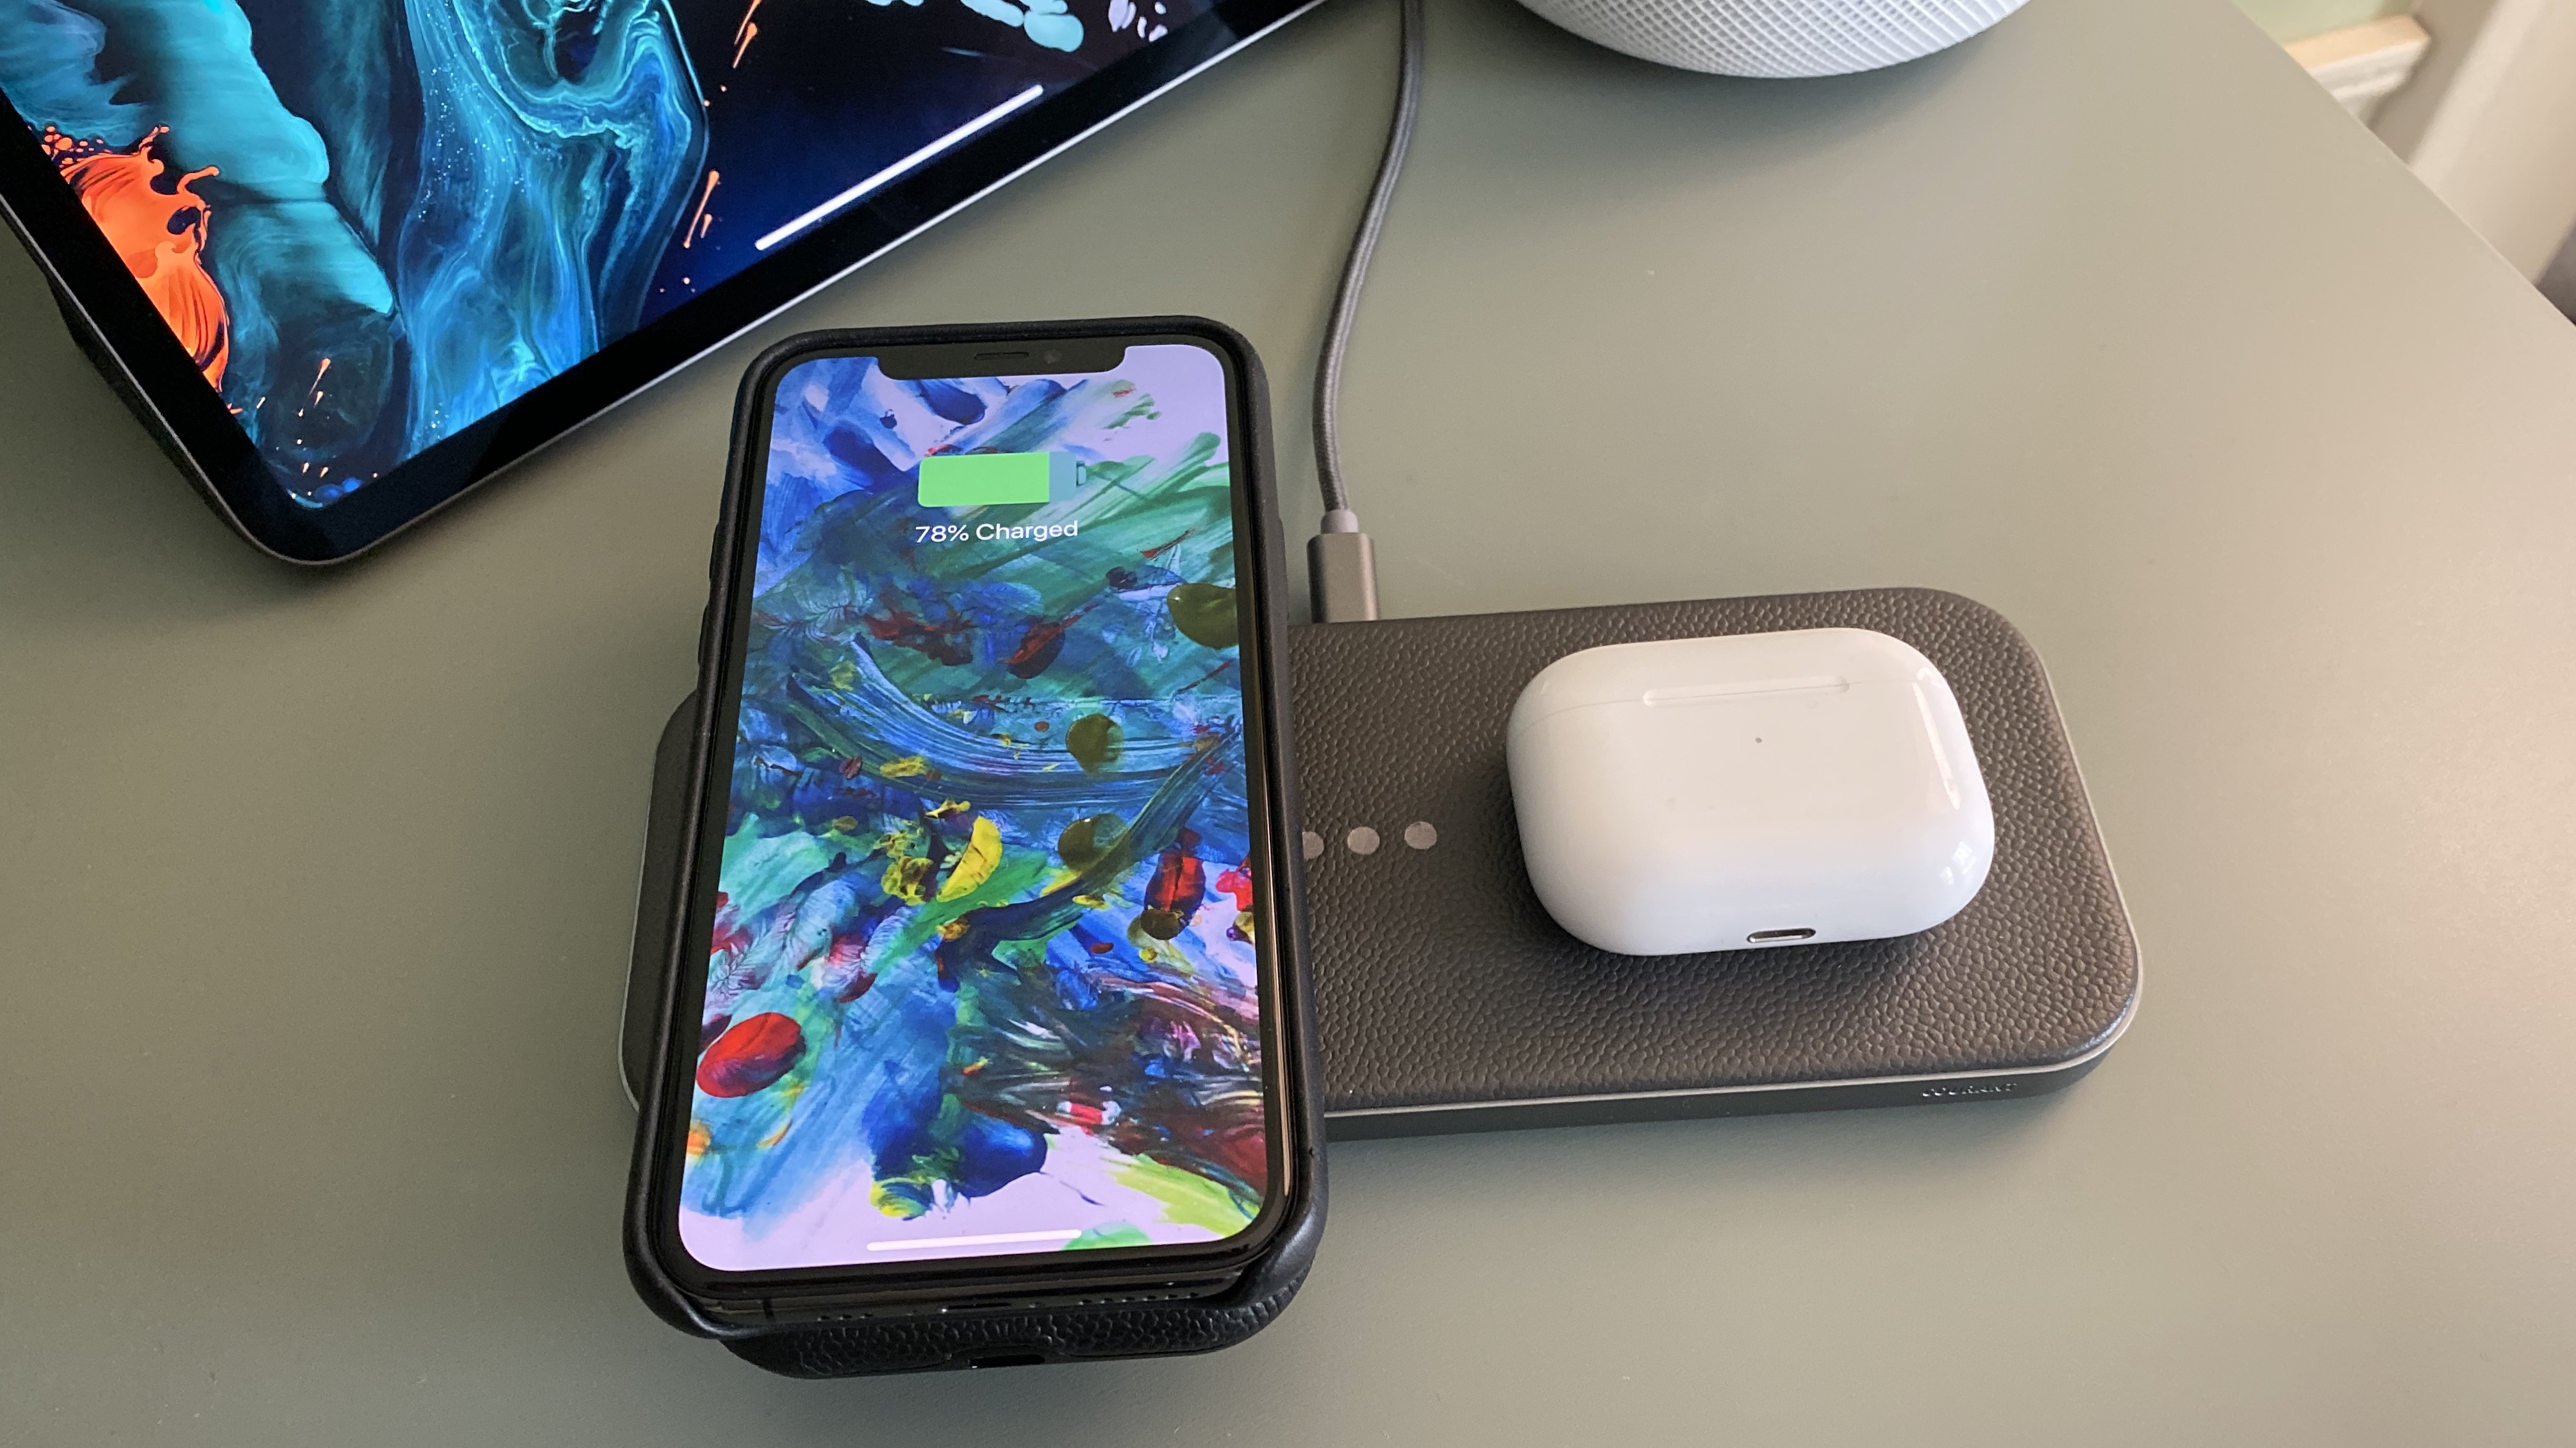 Courant Carry premium iPhone portable wireless charger stackable charging